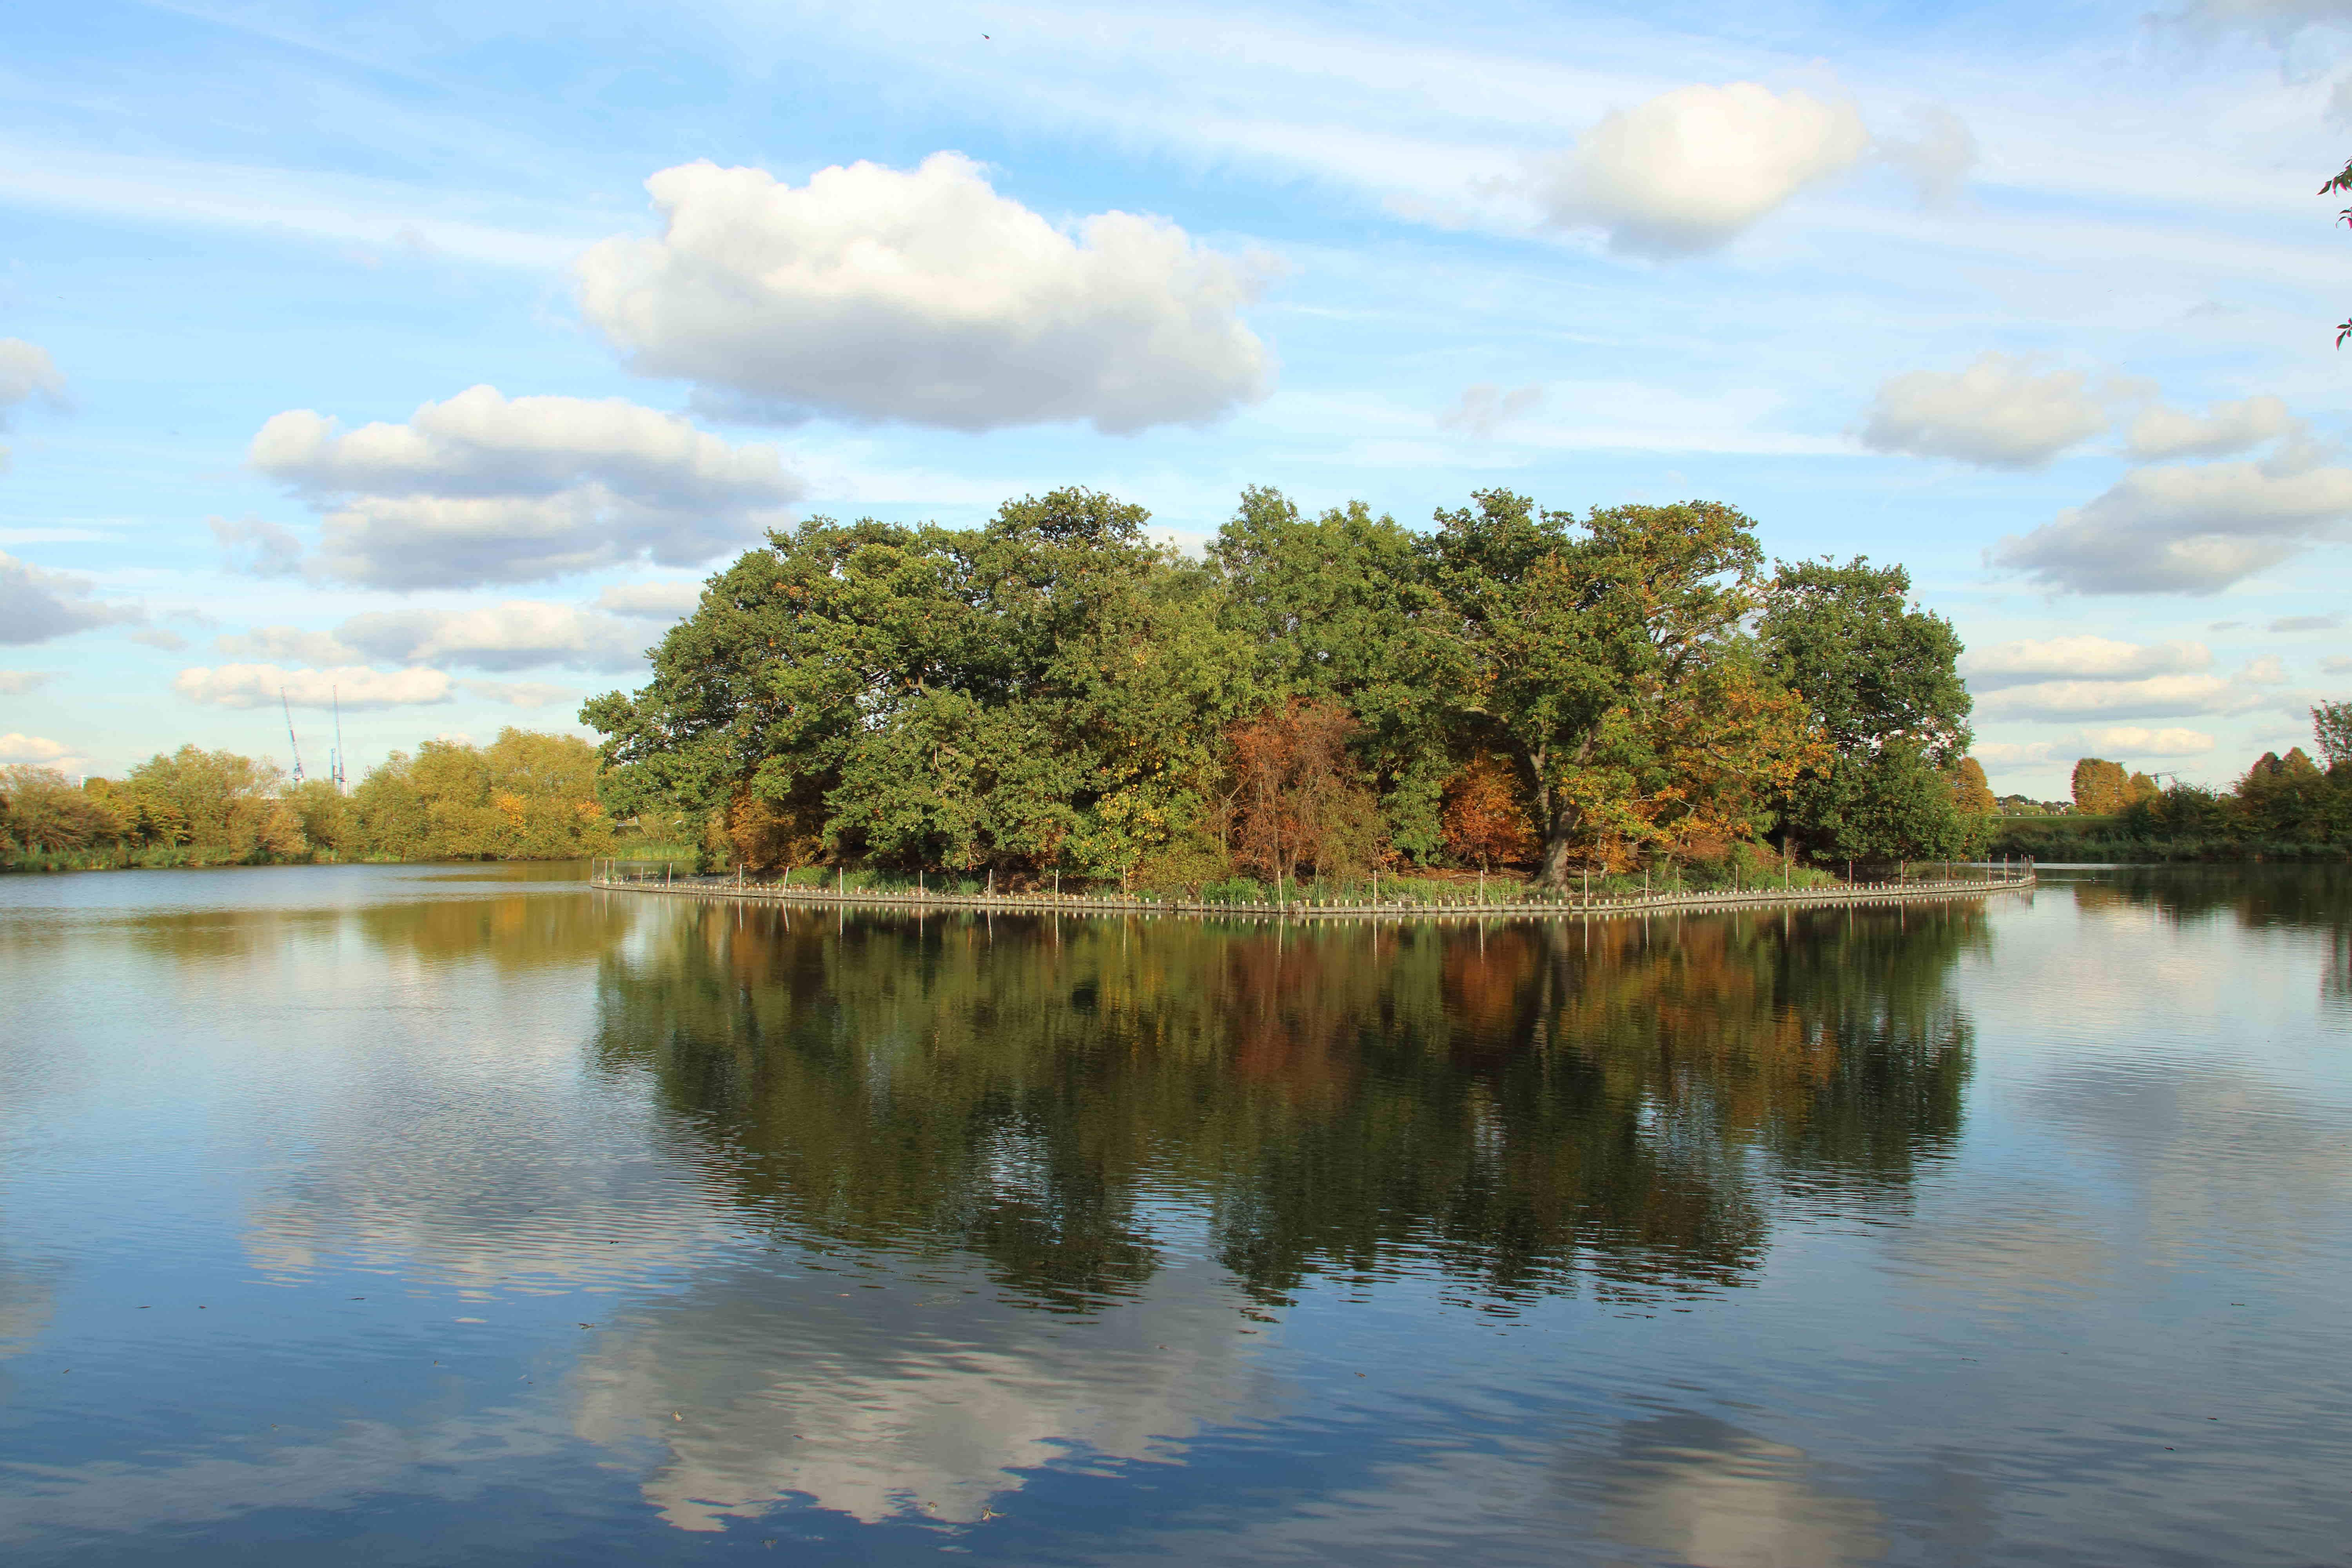 Europe's largest urban wetland nature reserve opens to the public